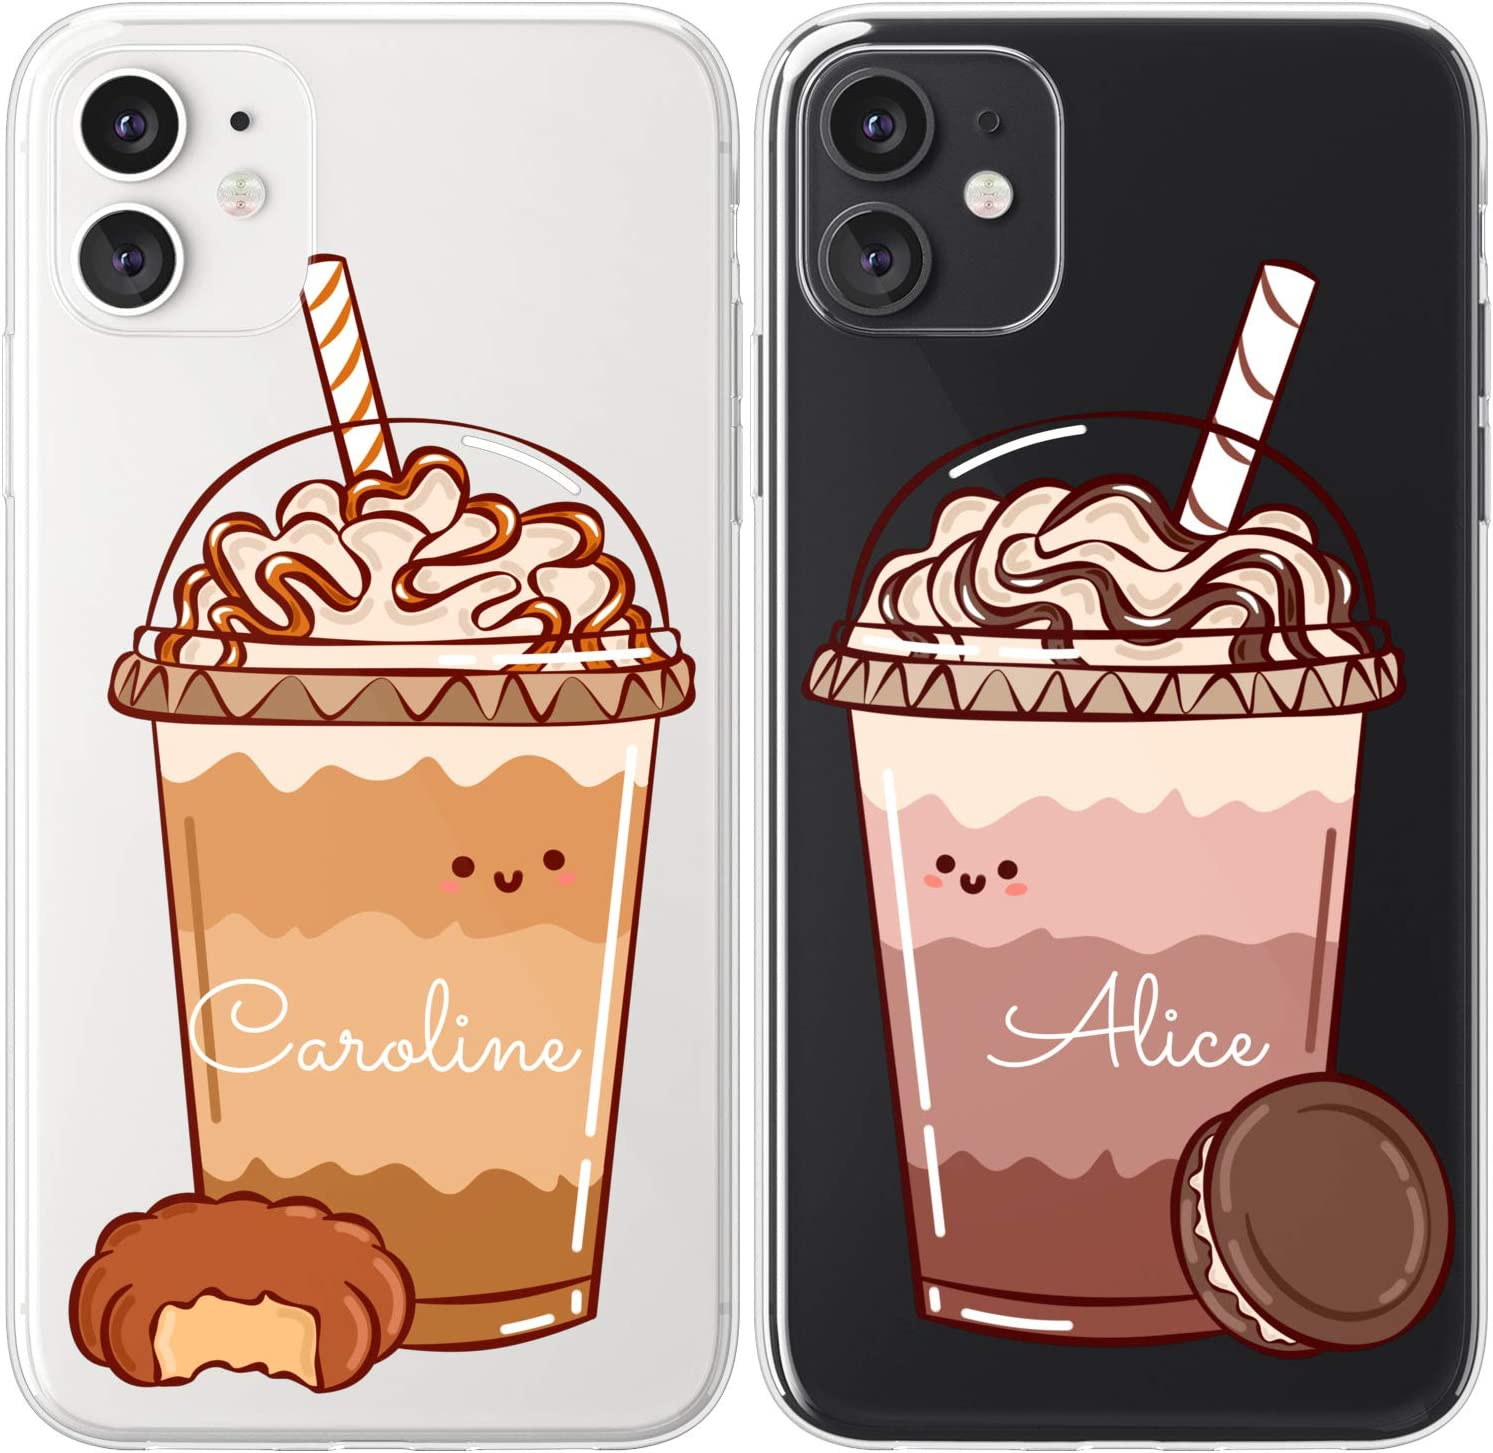 Mertak TPU Couple Cases Compatible with iPhone 12 Pro Max Mini 11 SE Xs Xr 8 Plus 7 6s Coffee Girlfriend Anniversary Protective Best Friend Cute Custom Frappuccino Caramel BFF Monogram Flexible Name